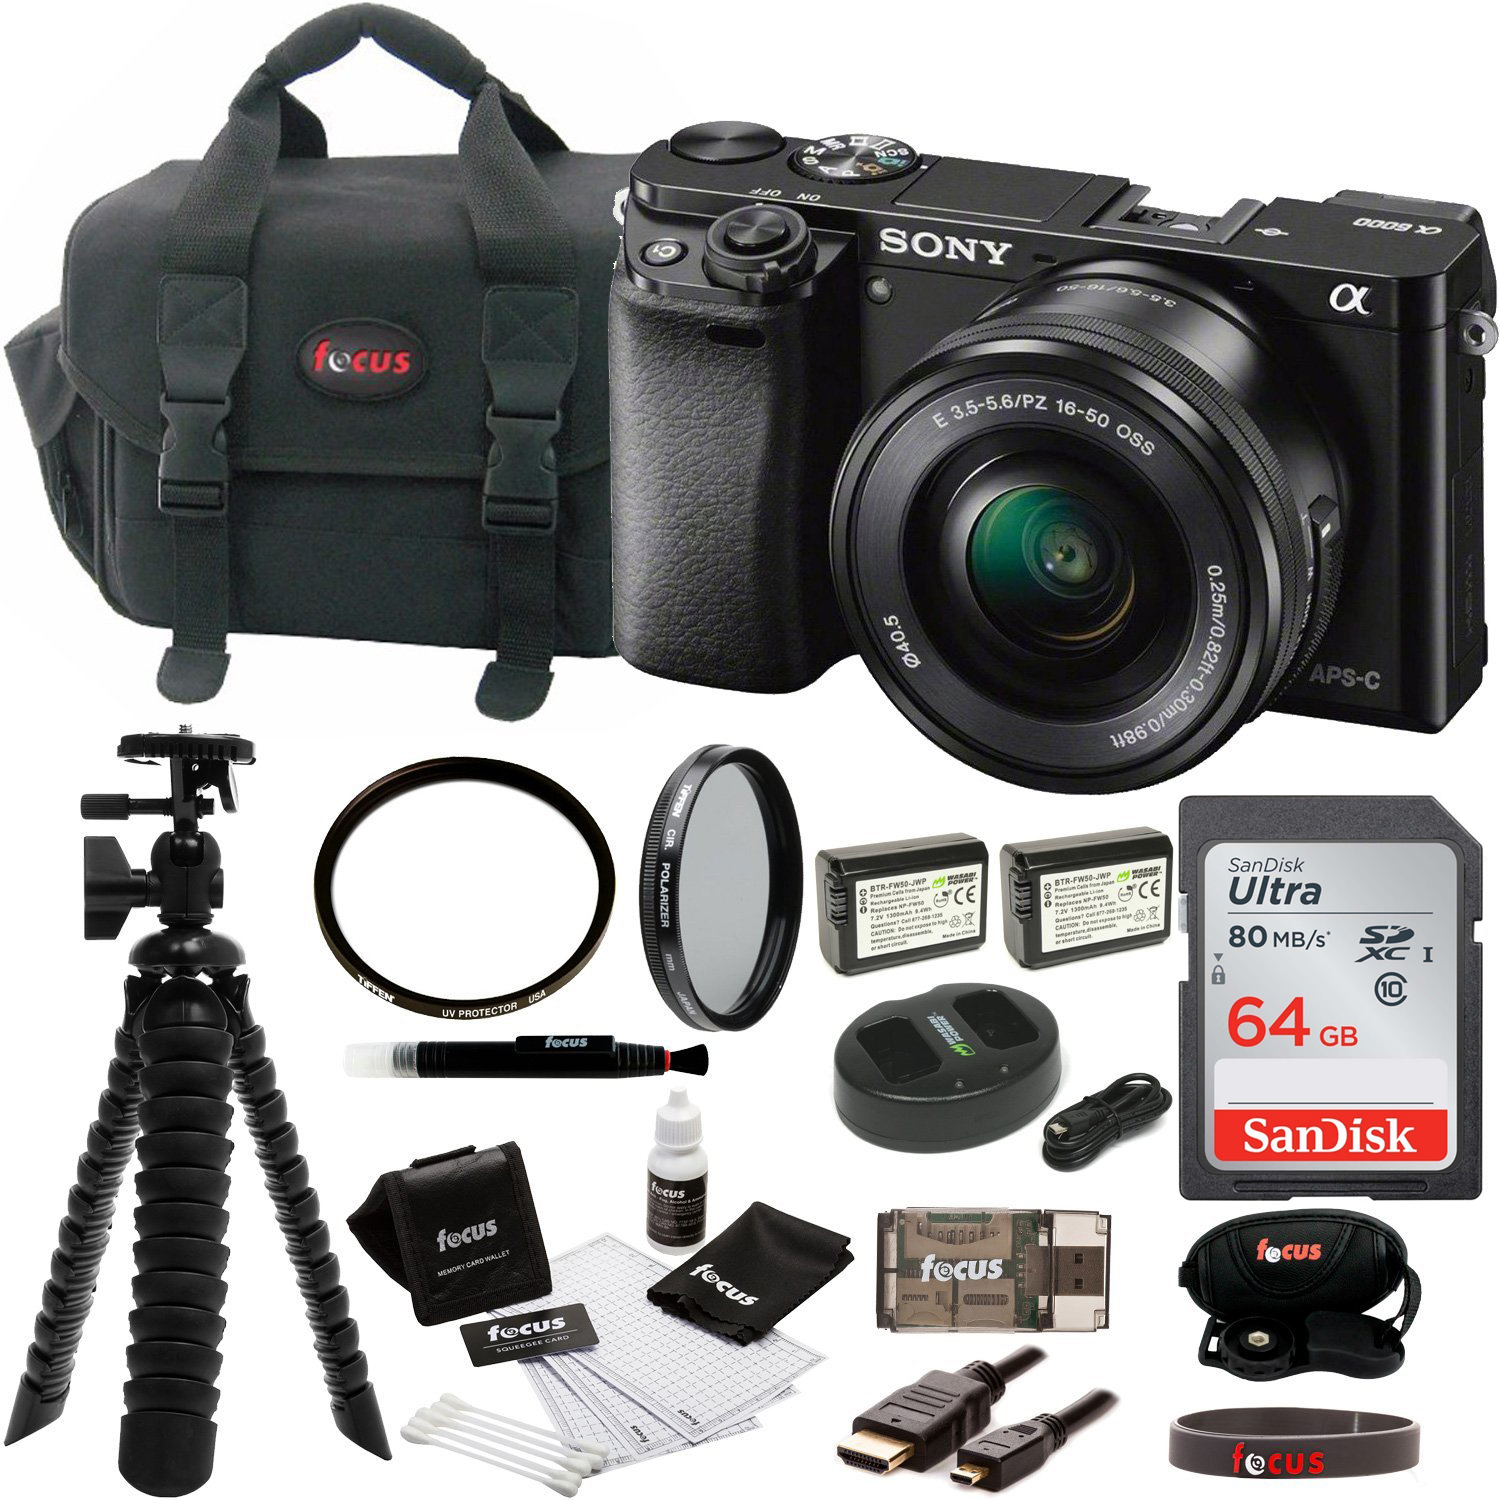 Sony Alpha a6000 Digital Camera w/ 16-50mm Lens (Black) + 64GB Card + Batteries & Charger + Accessory Bundle